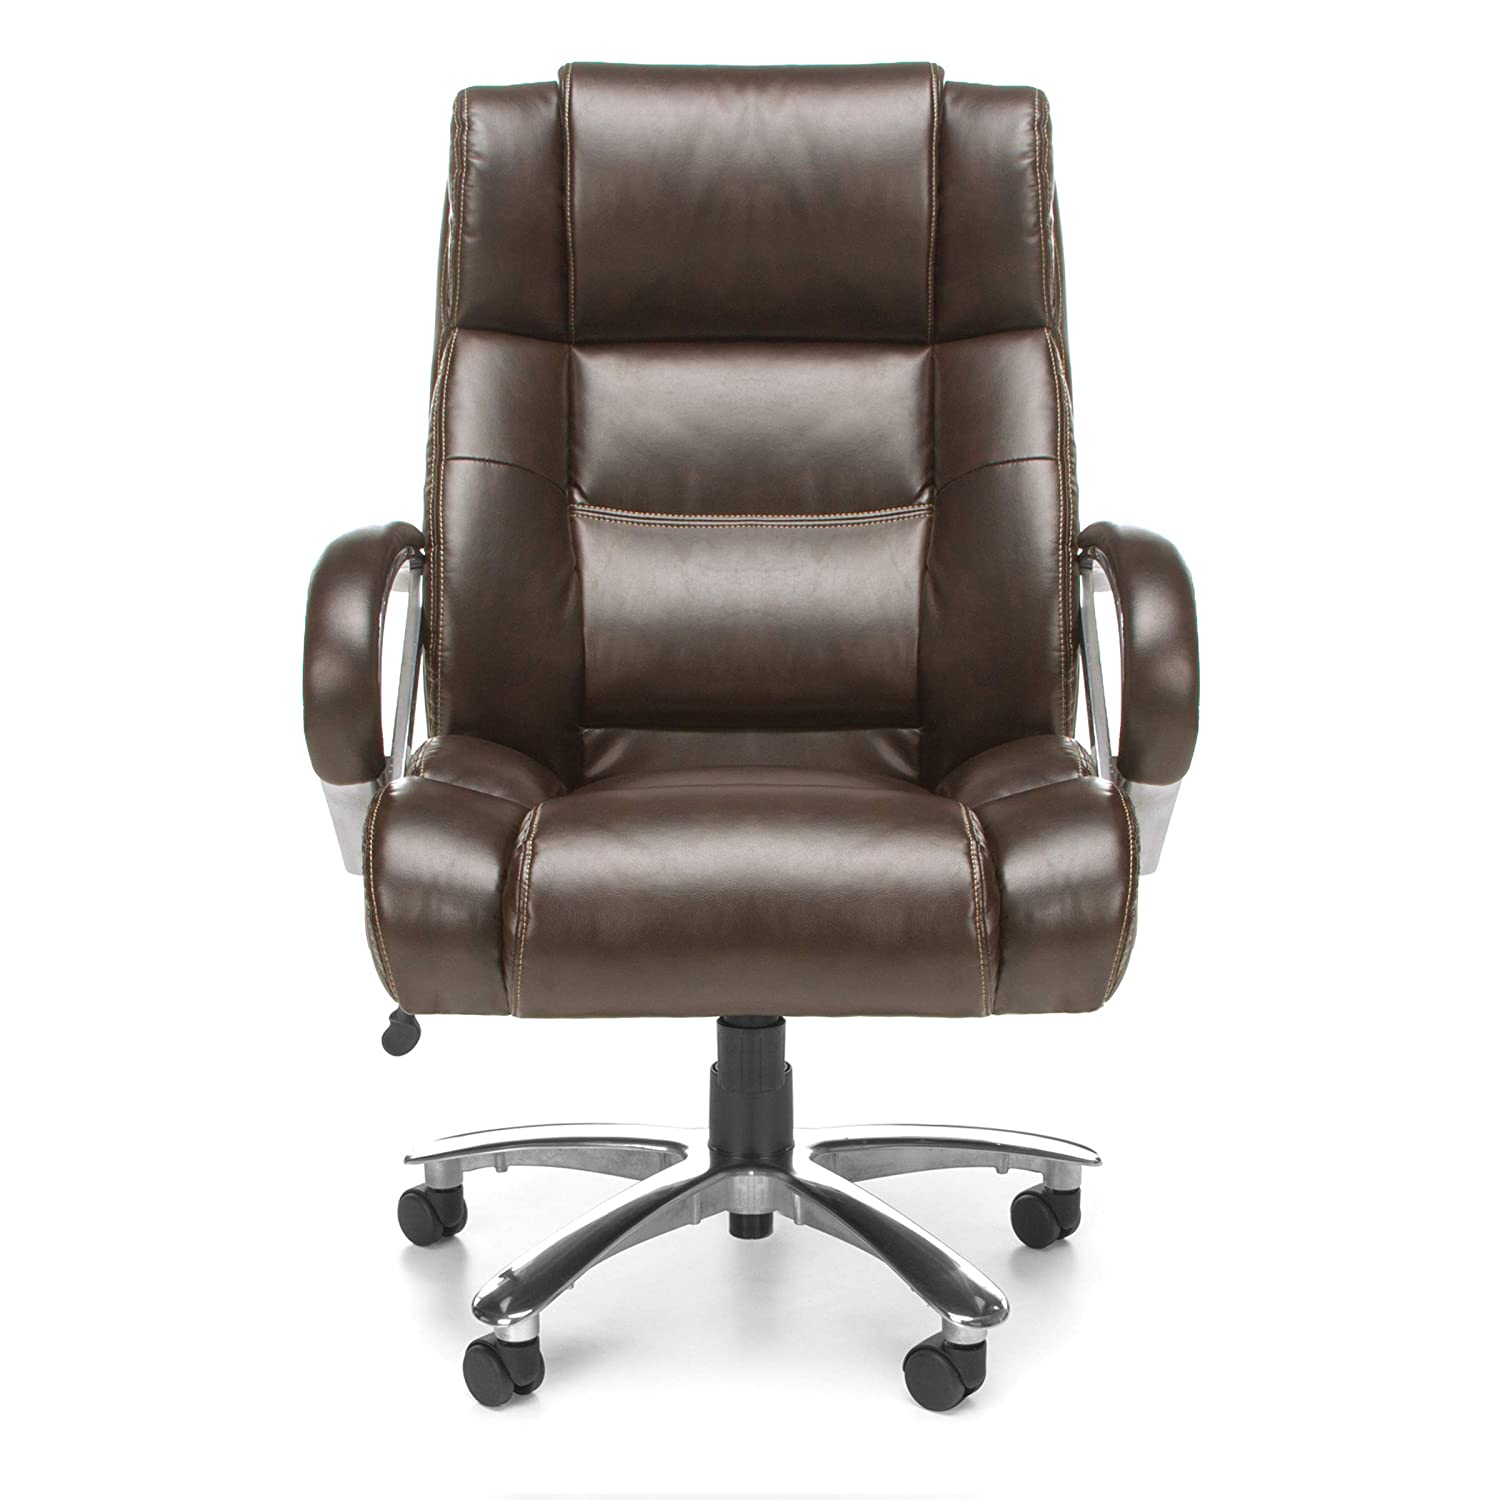 Best Big And Tall Office Chairs - {Top 12} In 2020